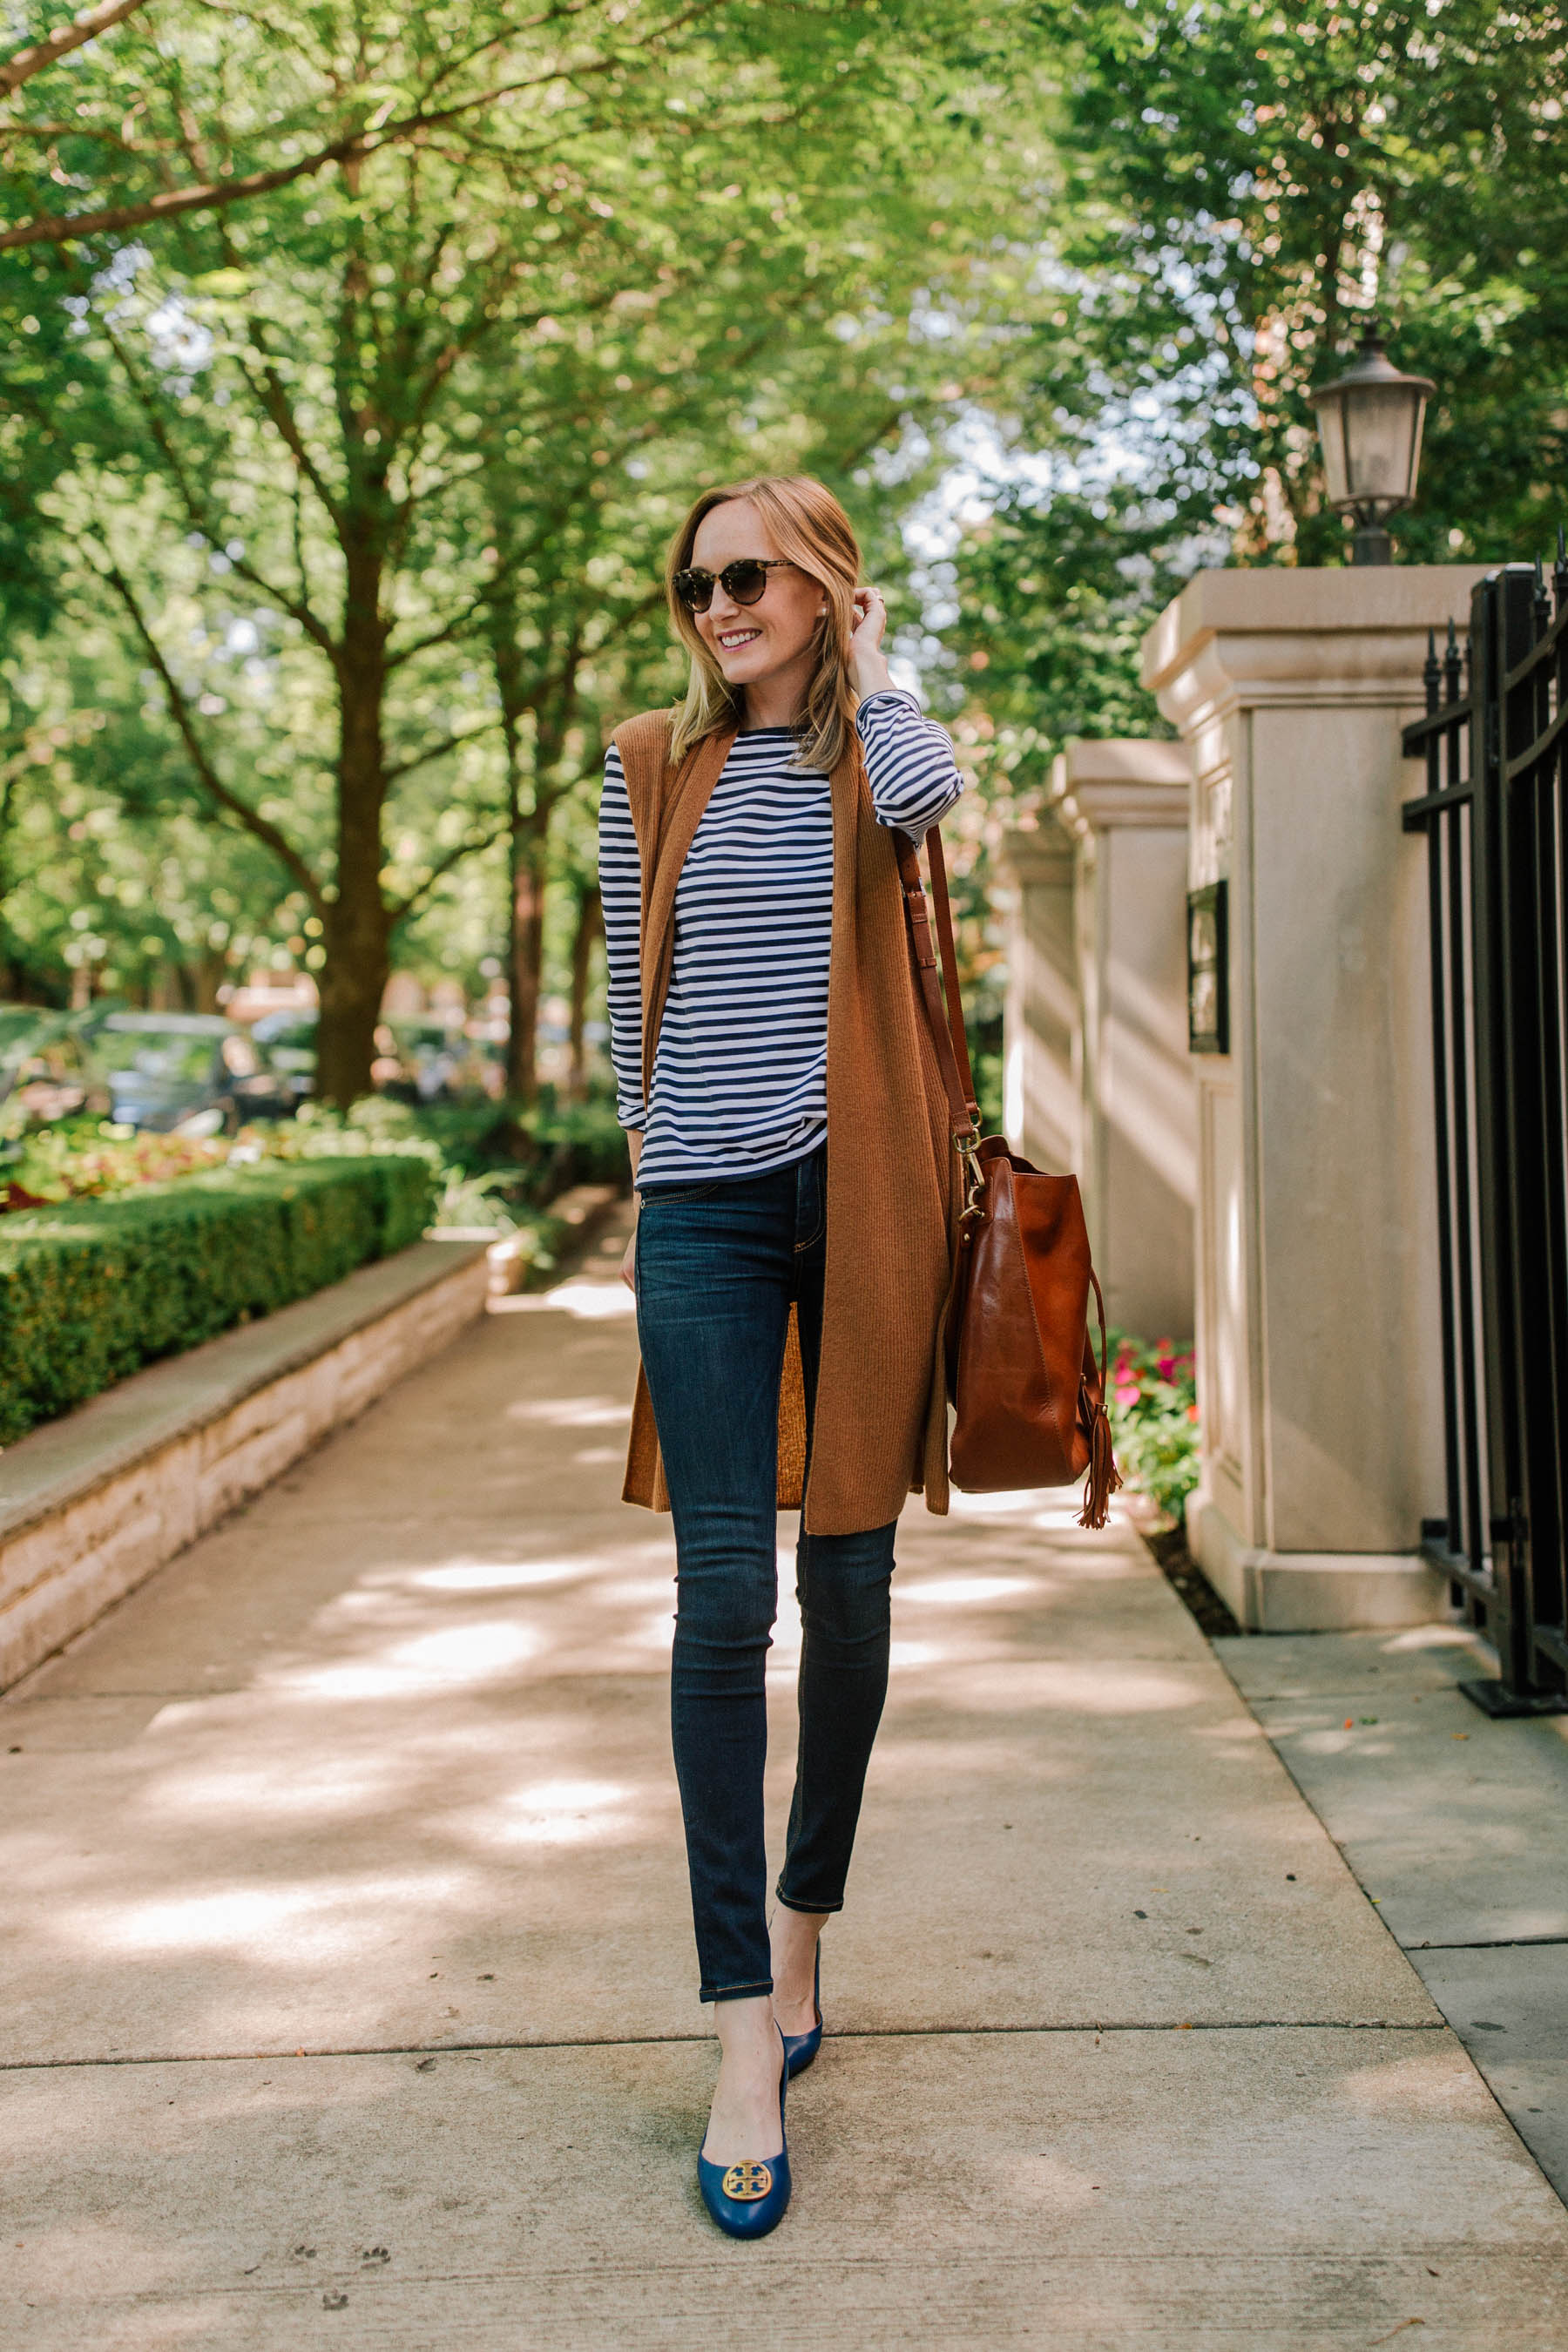 Halogen Ribbed Cashmere Vest / 1901 Striped Tee / Tory Burch Benton Ballet Flat / Bucket Bag